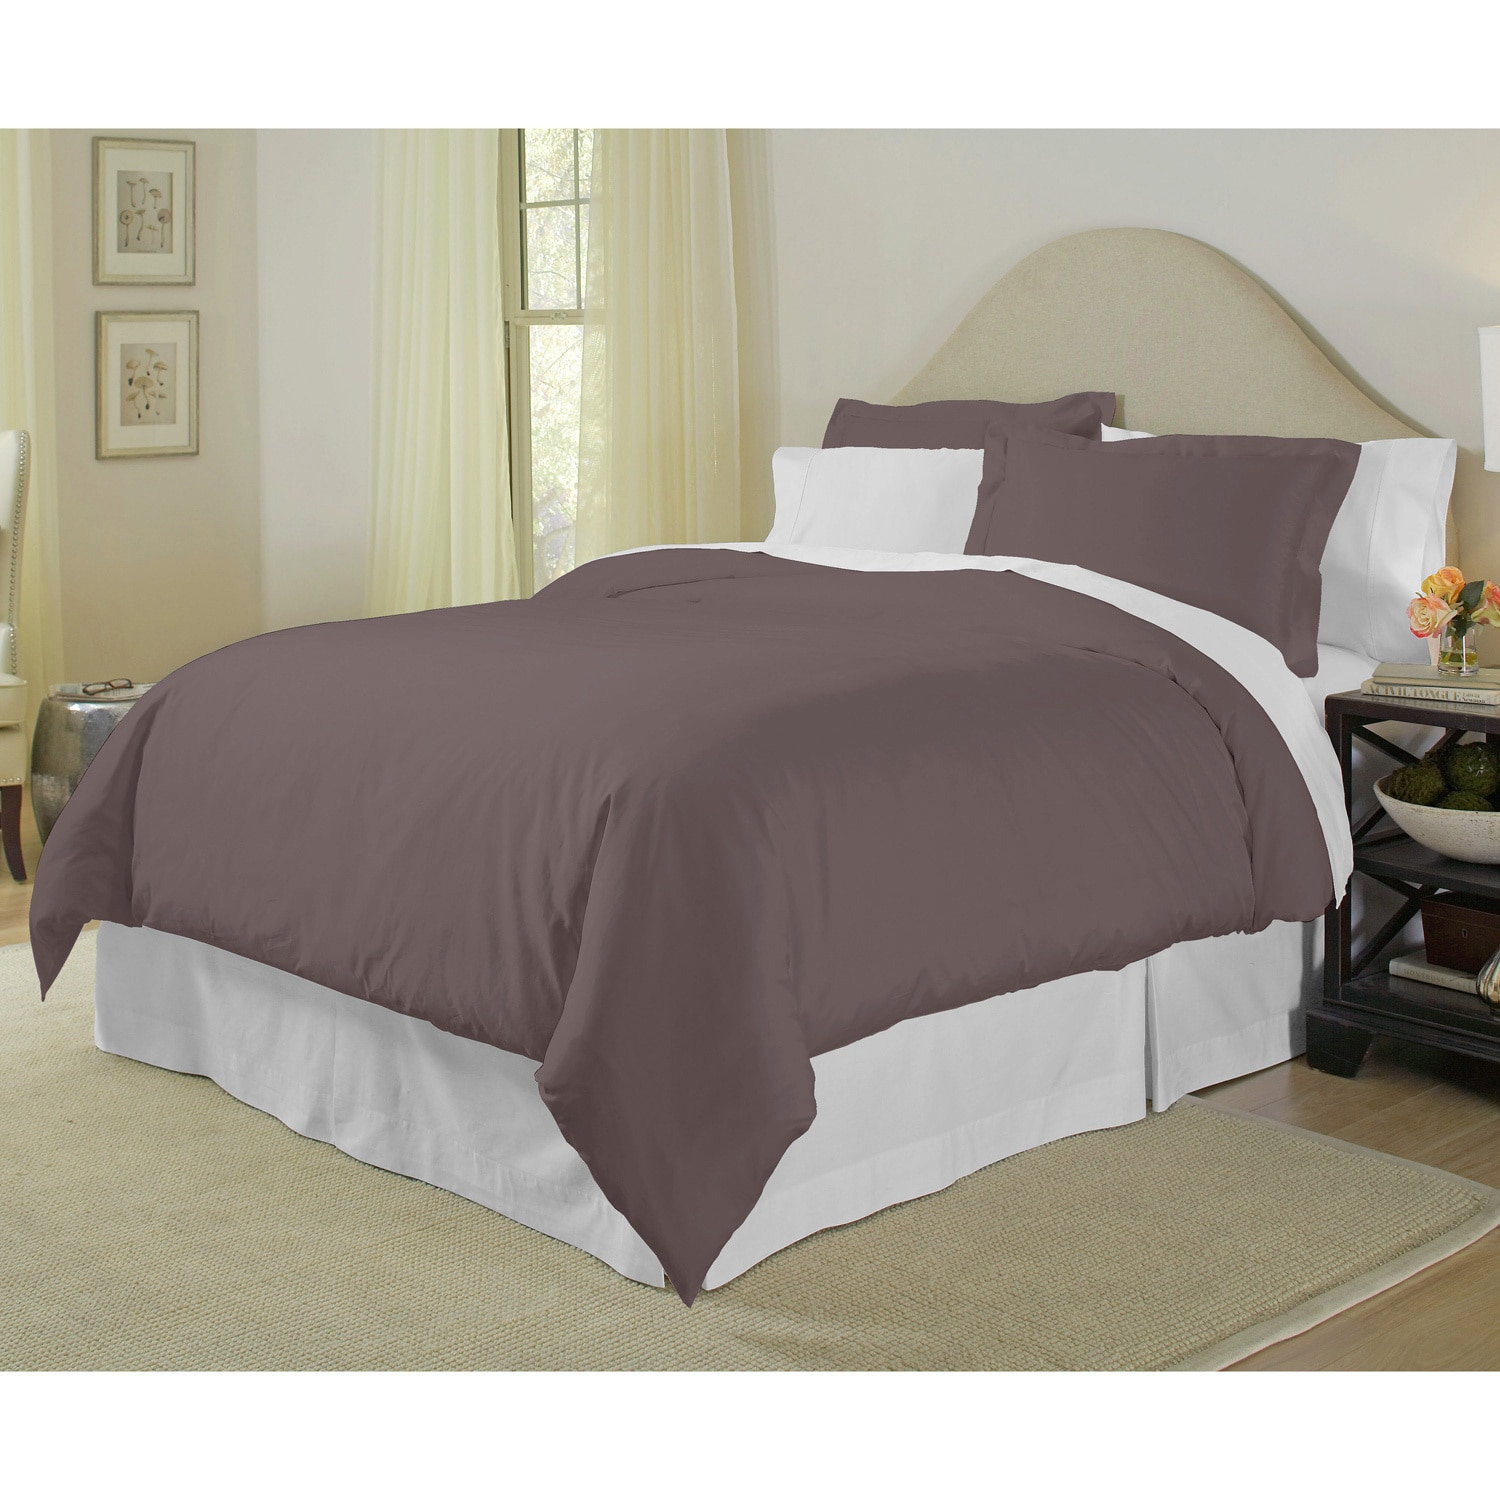 Pointehaven Pima Cotton 400 Thread Count 3 Piece Duvet Cover Set Free Shipping Today 12453822